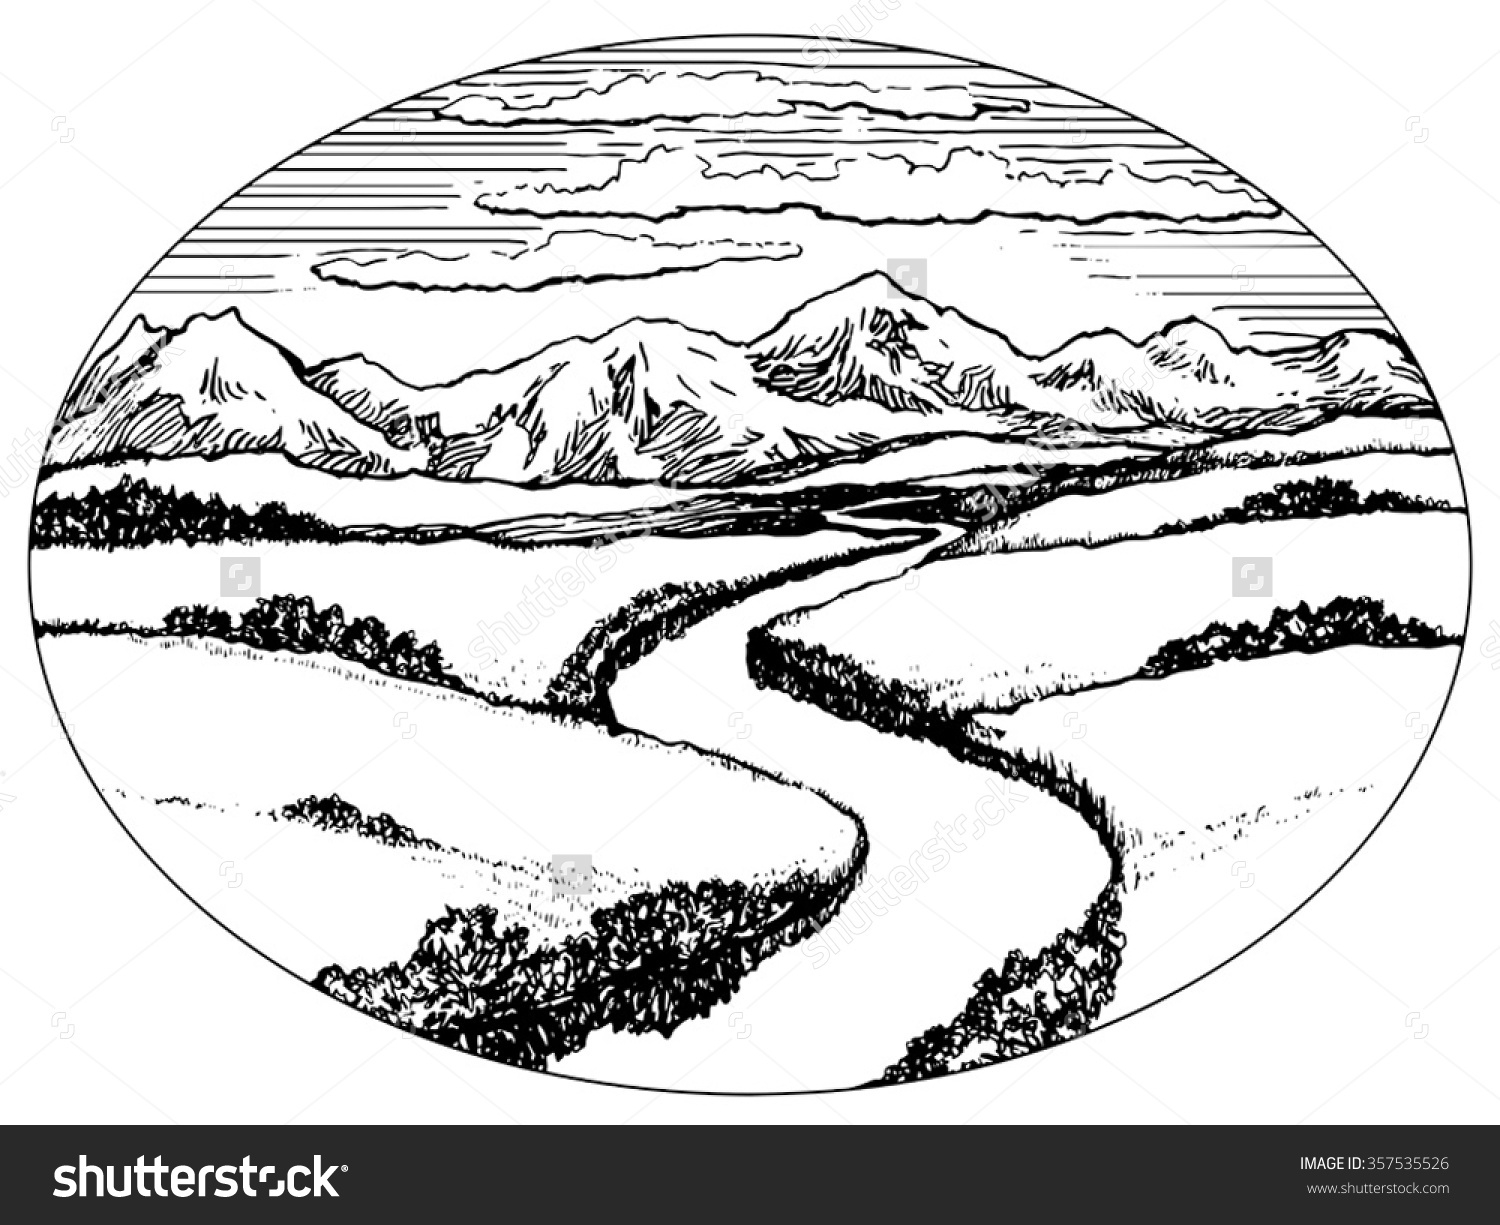 Black and white valley clipart svg library Valley clipart black and white 7 » Clipart Station svg library